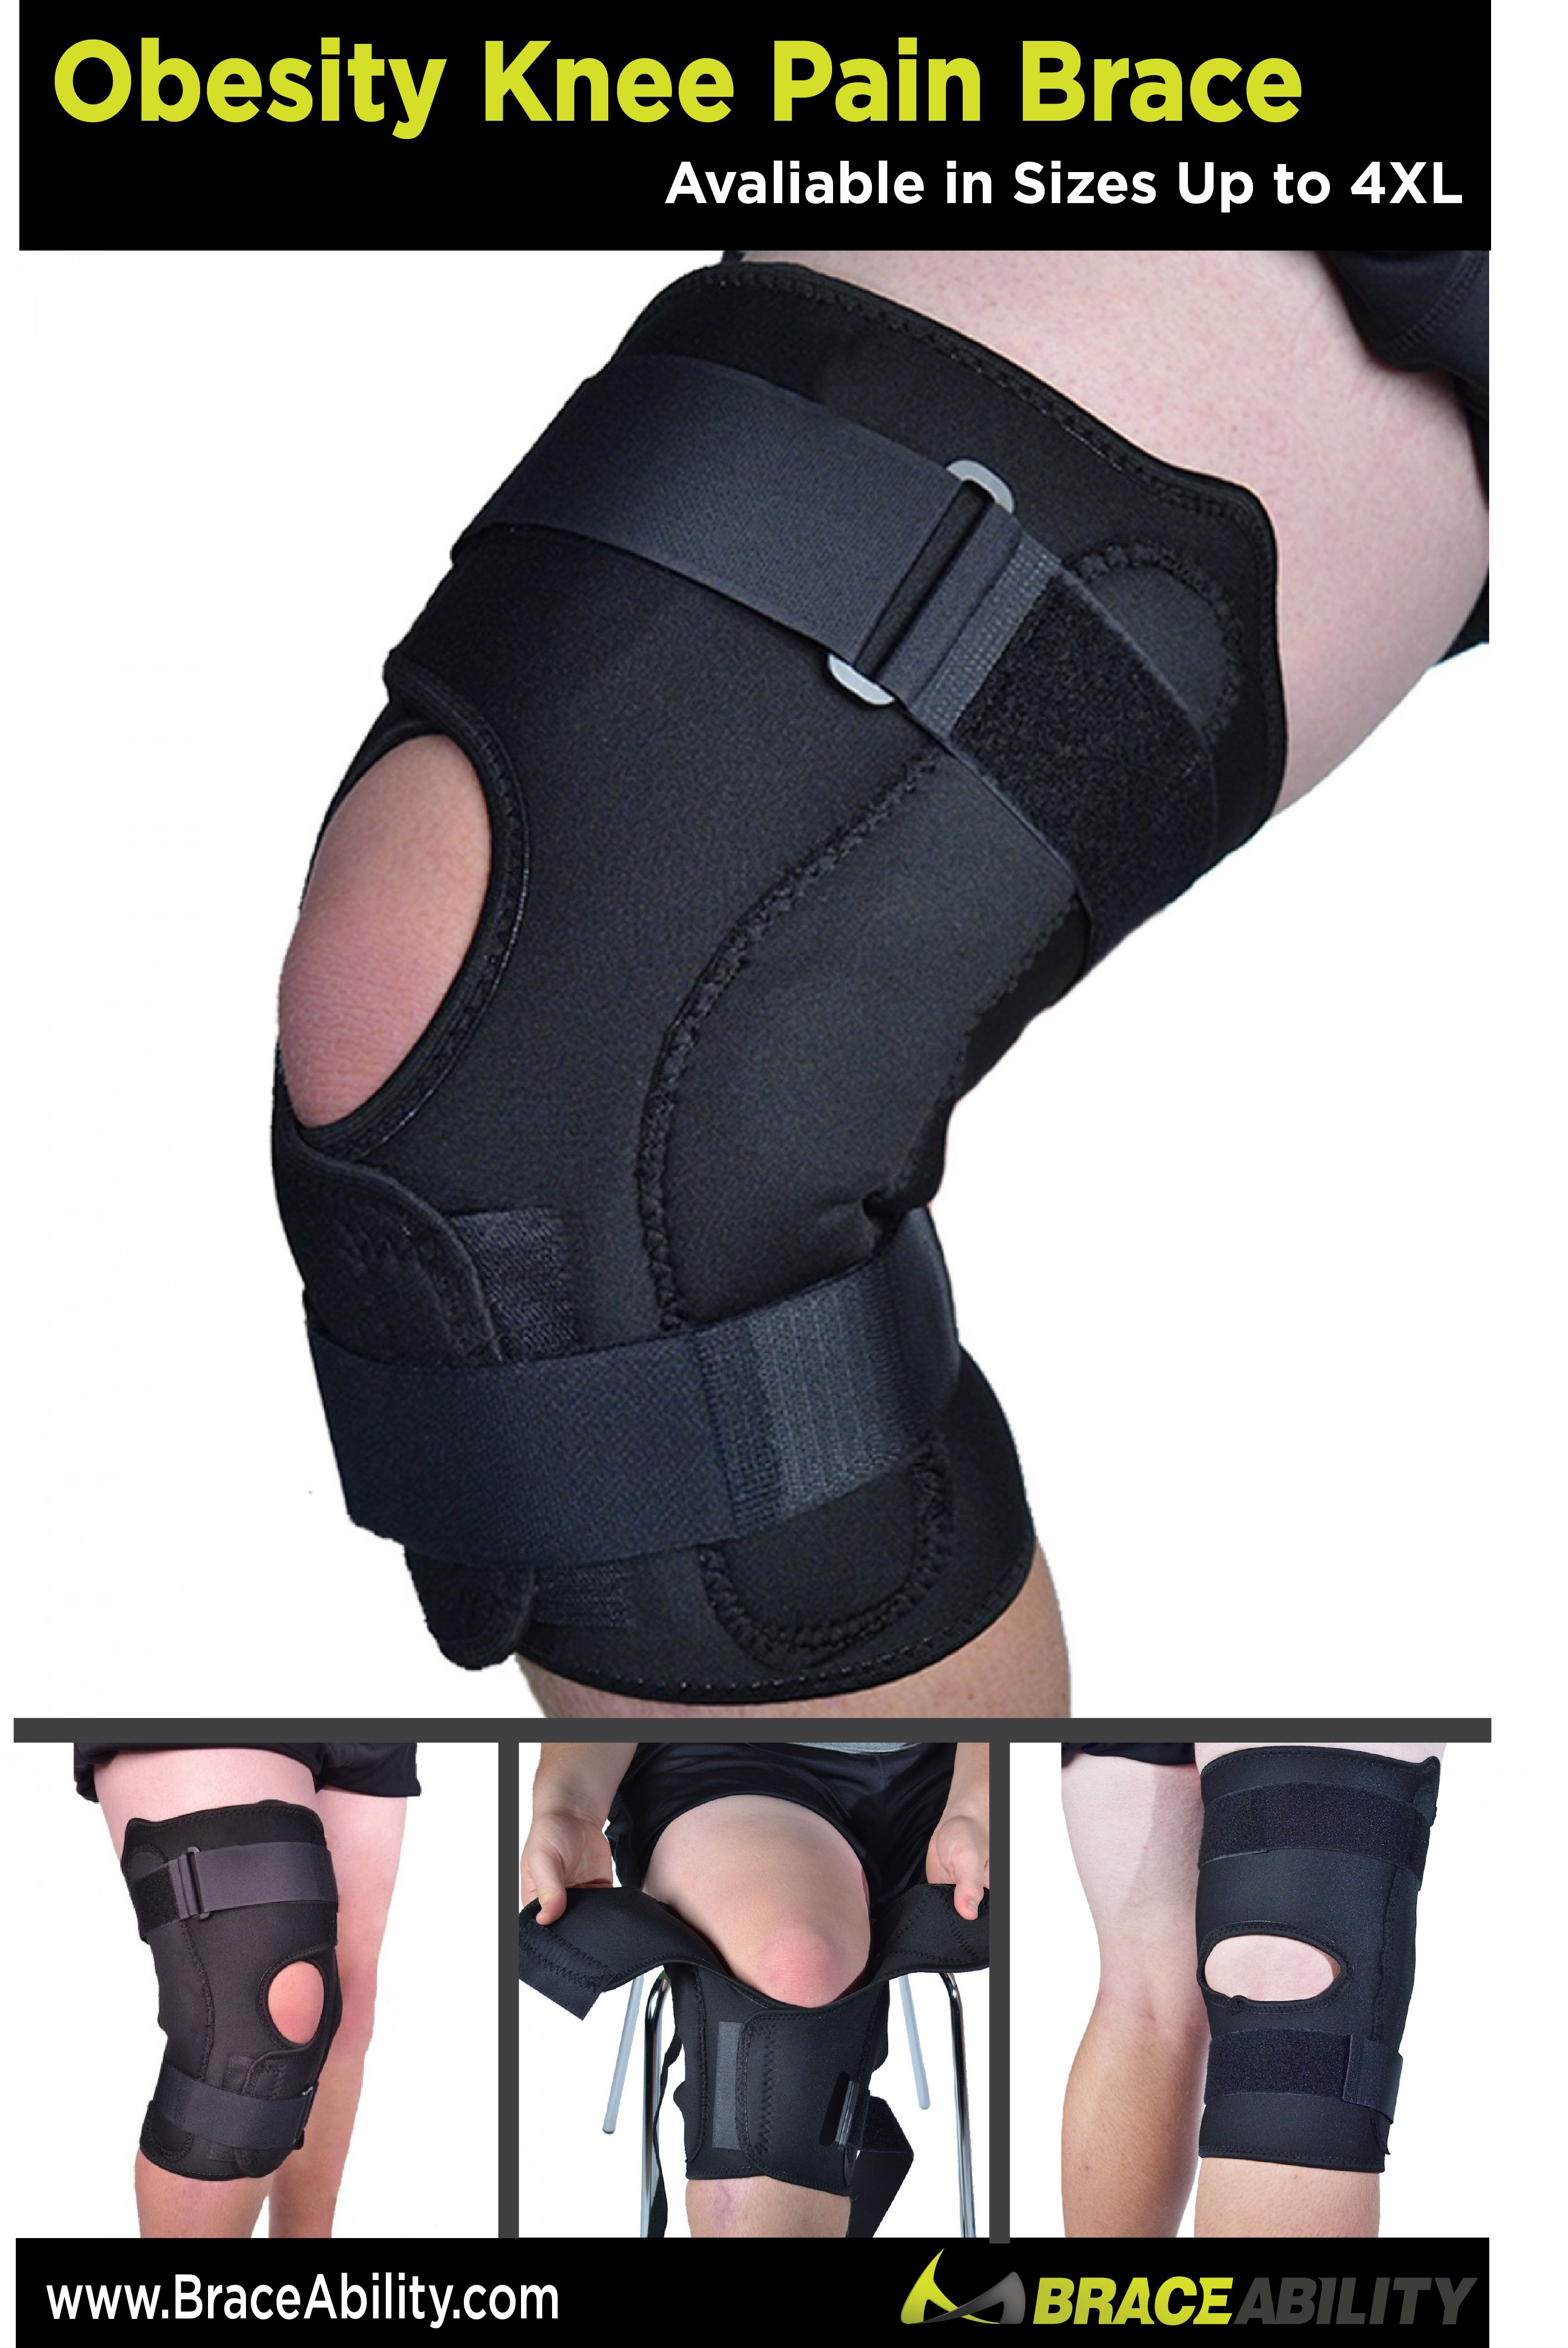 17548f97d0 Obesity Knee Pain Brace-- This big knee brace has all the features of a